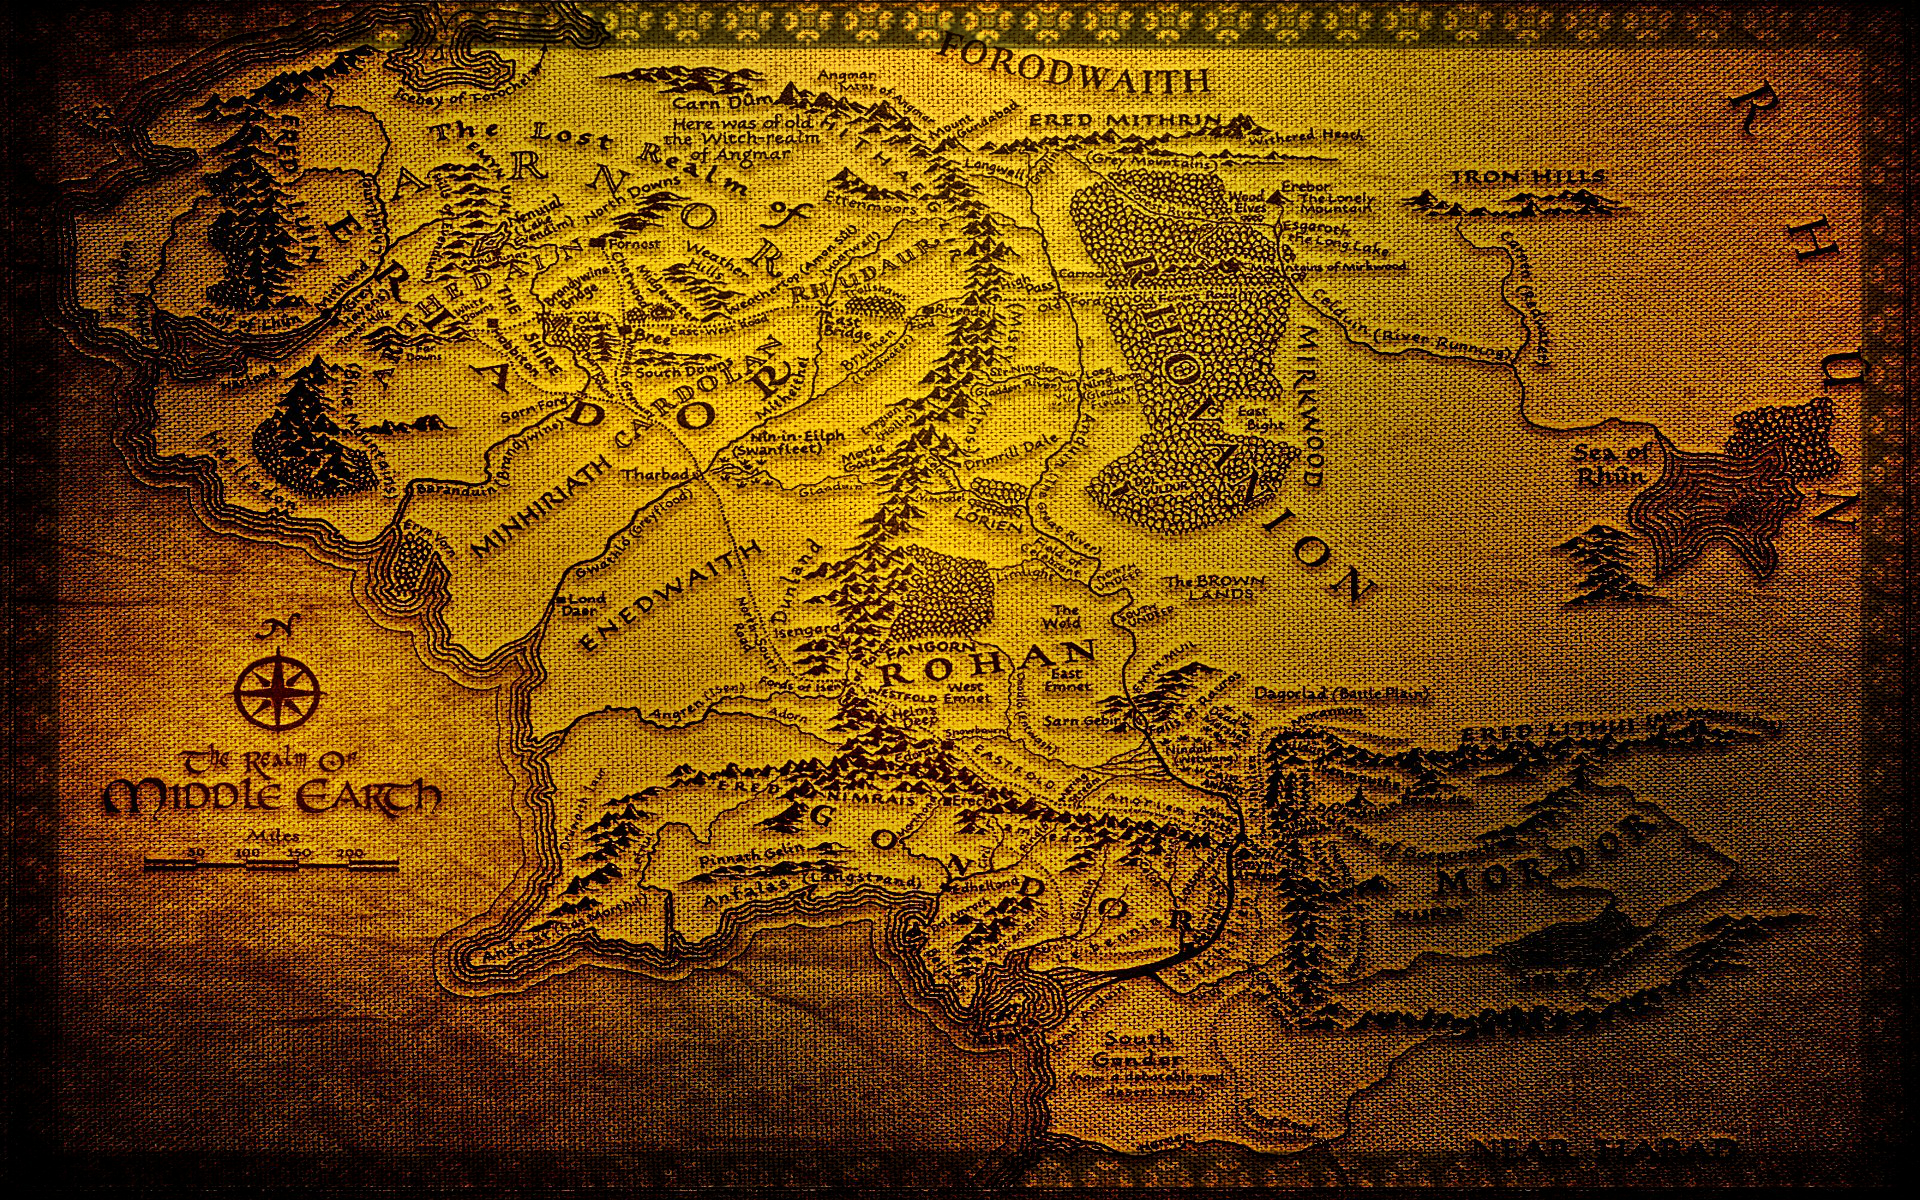 Lord Of The Rings Photos Top and High Quality HD 1920x1200